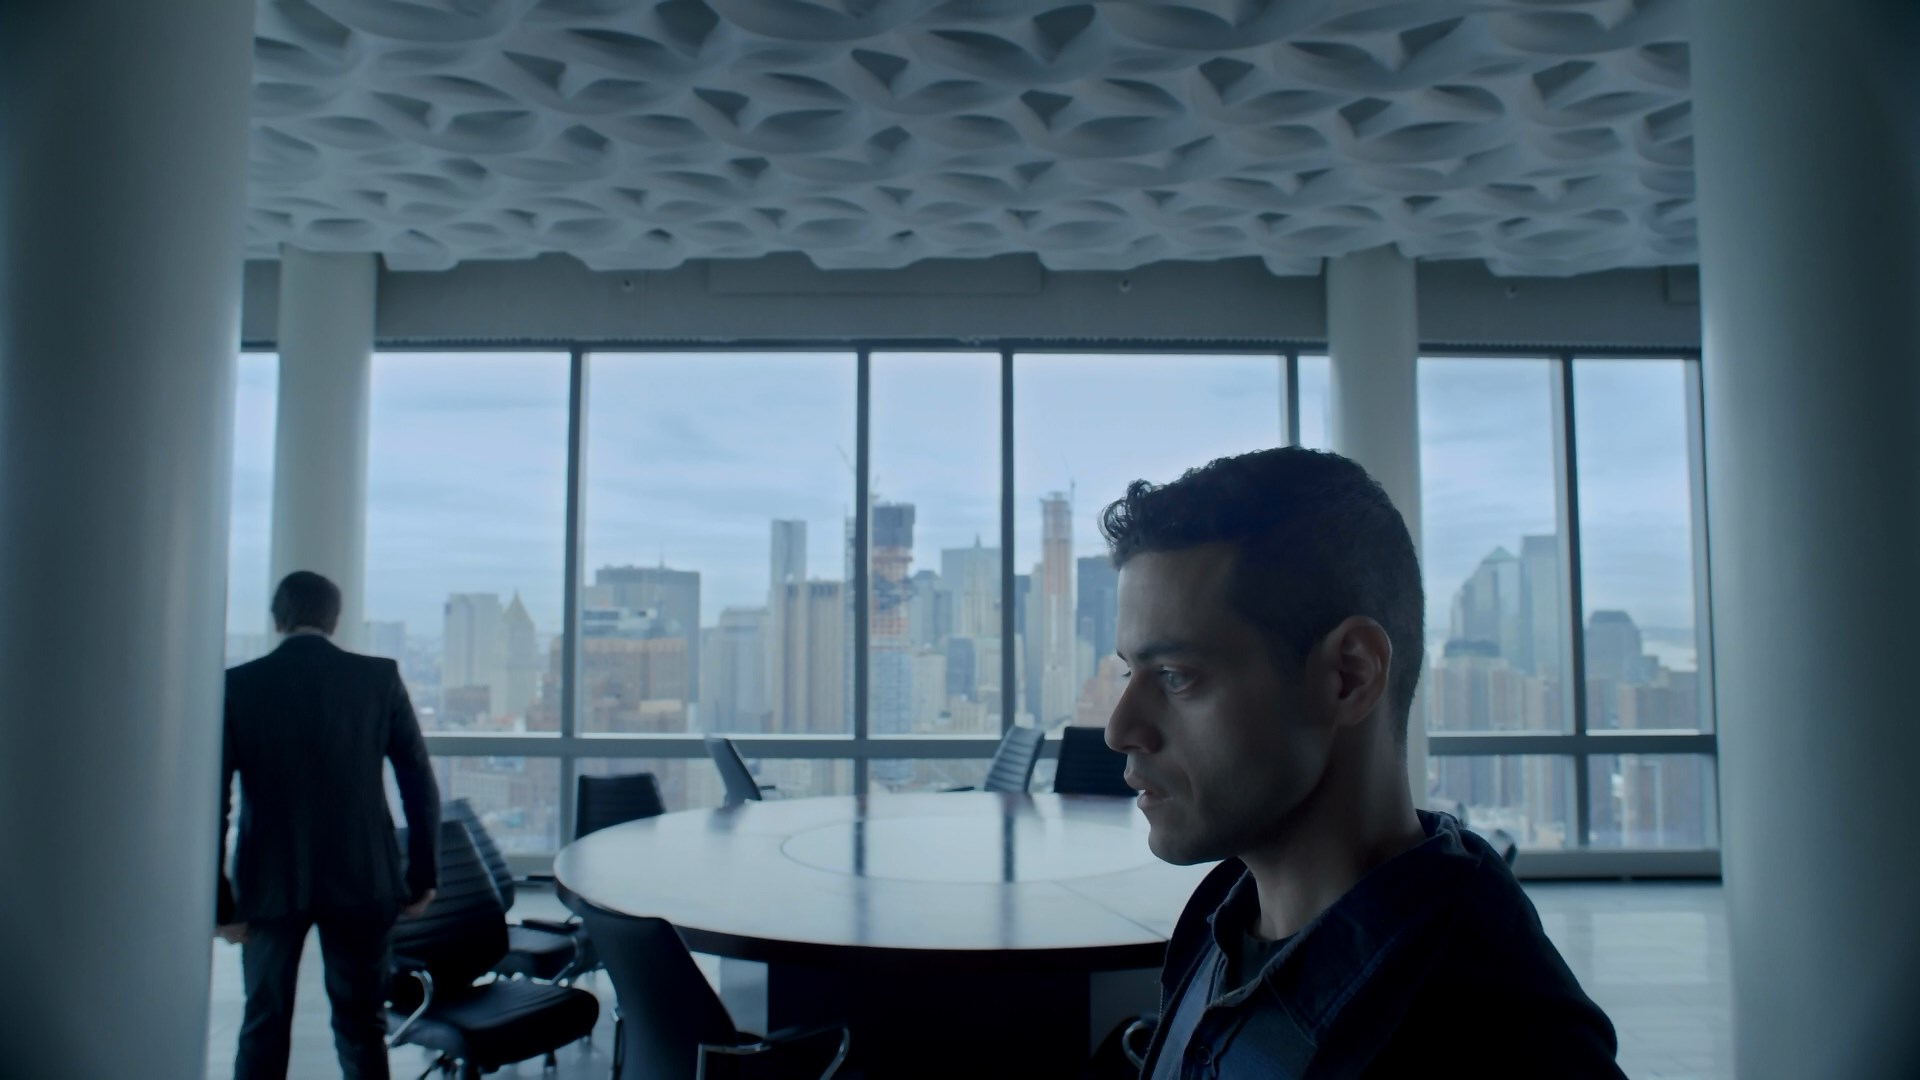 Inside The Screen The Awarded Set Production Design of Mr.Robot 5